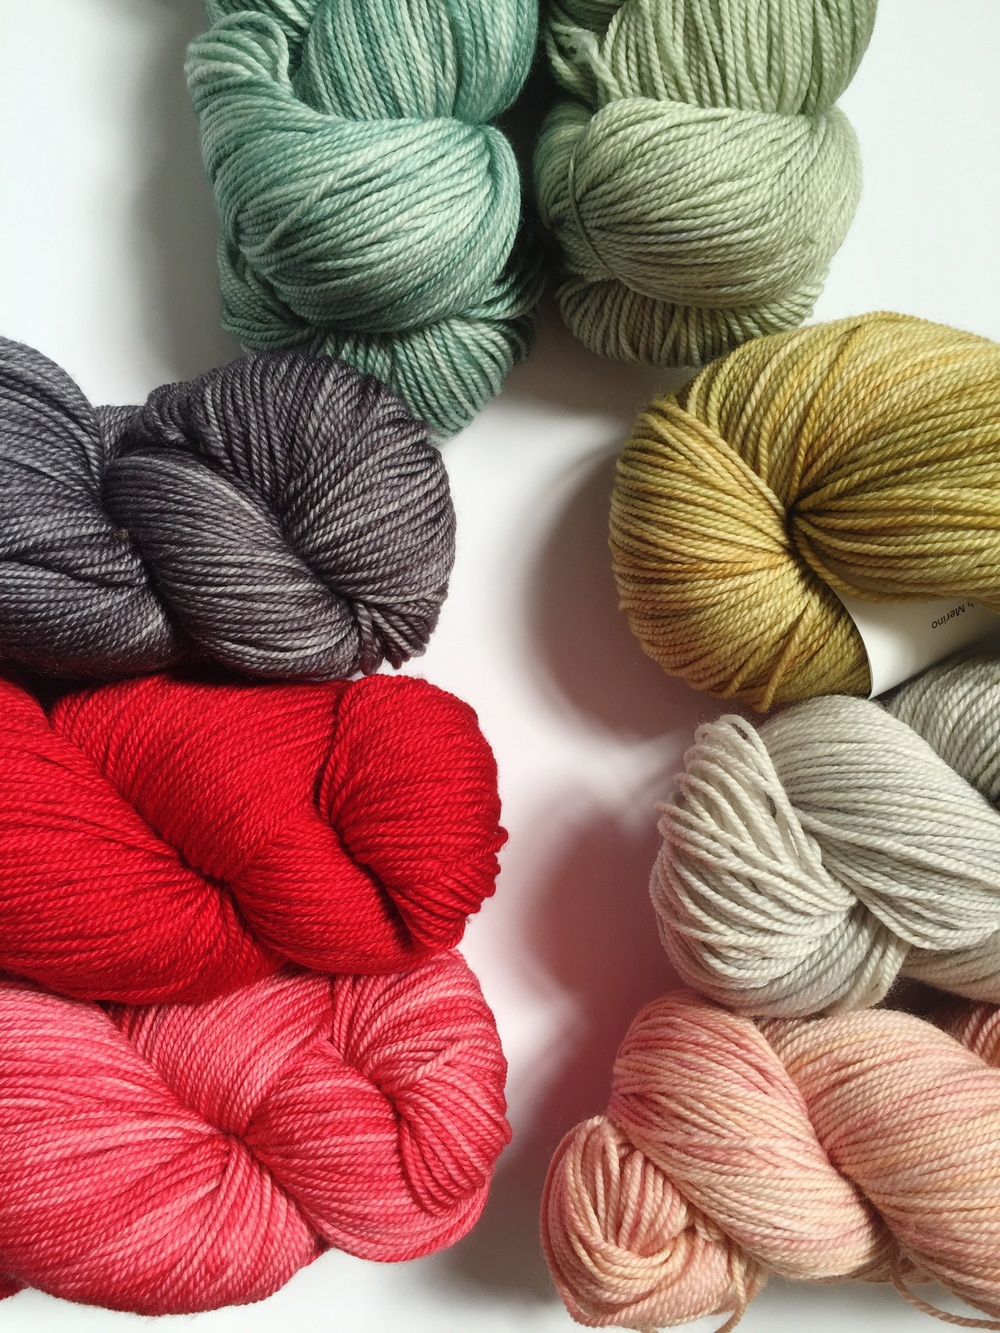 Anzula Squishy colours (from bottom left) Lipstick, Red Shoe, Charcoal, Herb, Country Green, Tan, Gravity and Mauve